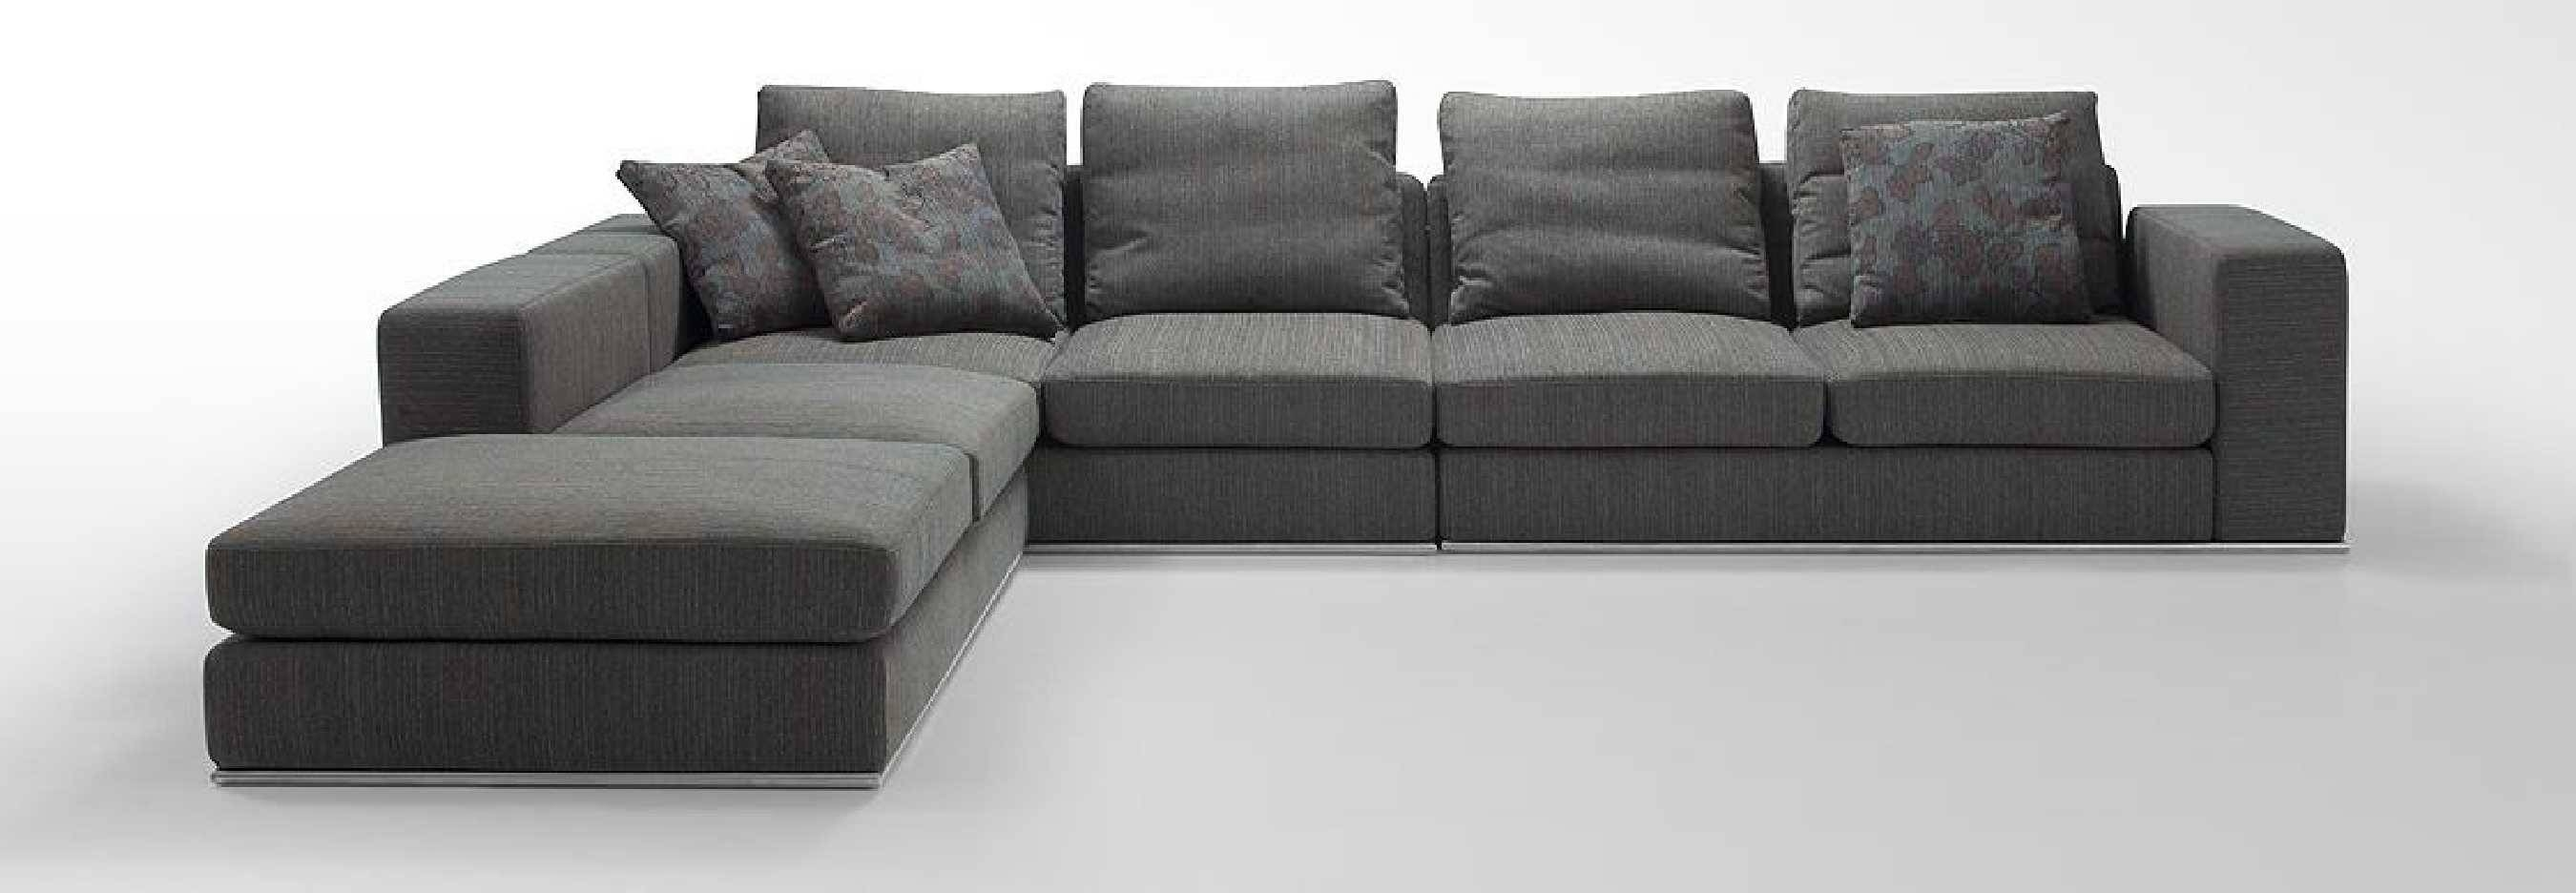 Sofas Center : Grey Sectional Sofa With Chaise Furniture L Shaped with regard to L Shaped Fabric Sofas (Image 25 of 30)